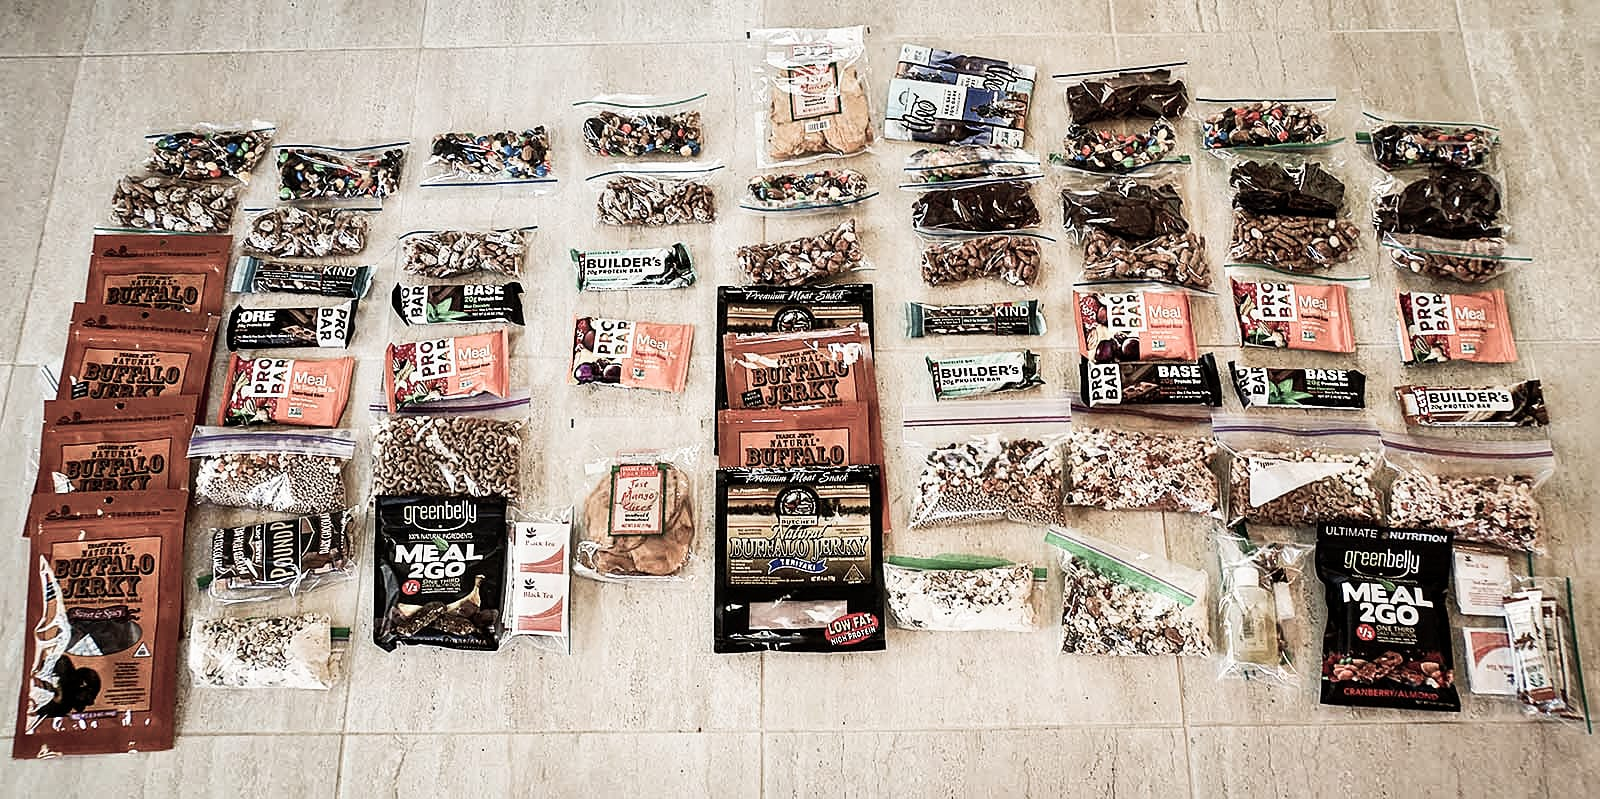 Healthy and satisfying food for less weight: My nutritious and high calorie Backpacking Food gives me 3,000 healthful and filling calories of complex carbs, protein and healthy fats for around 1.5 pounds. This could save me as much fivepounds or more of food on a trip vs. a typical backpacker's food.